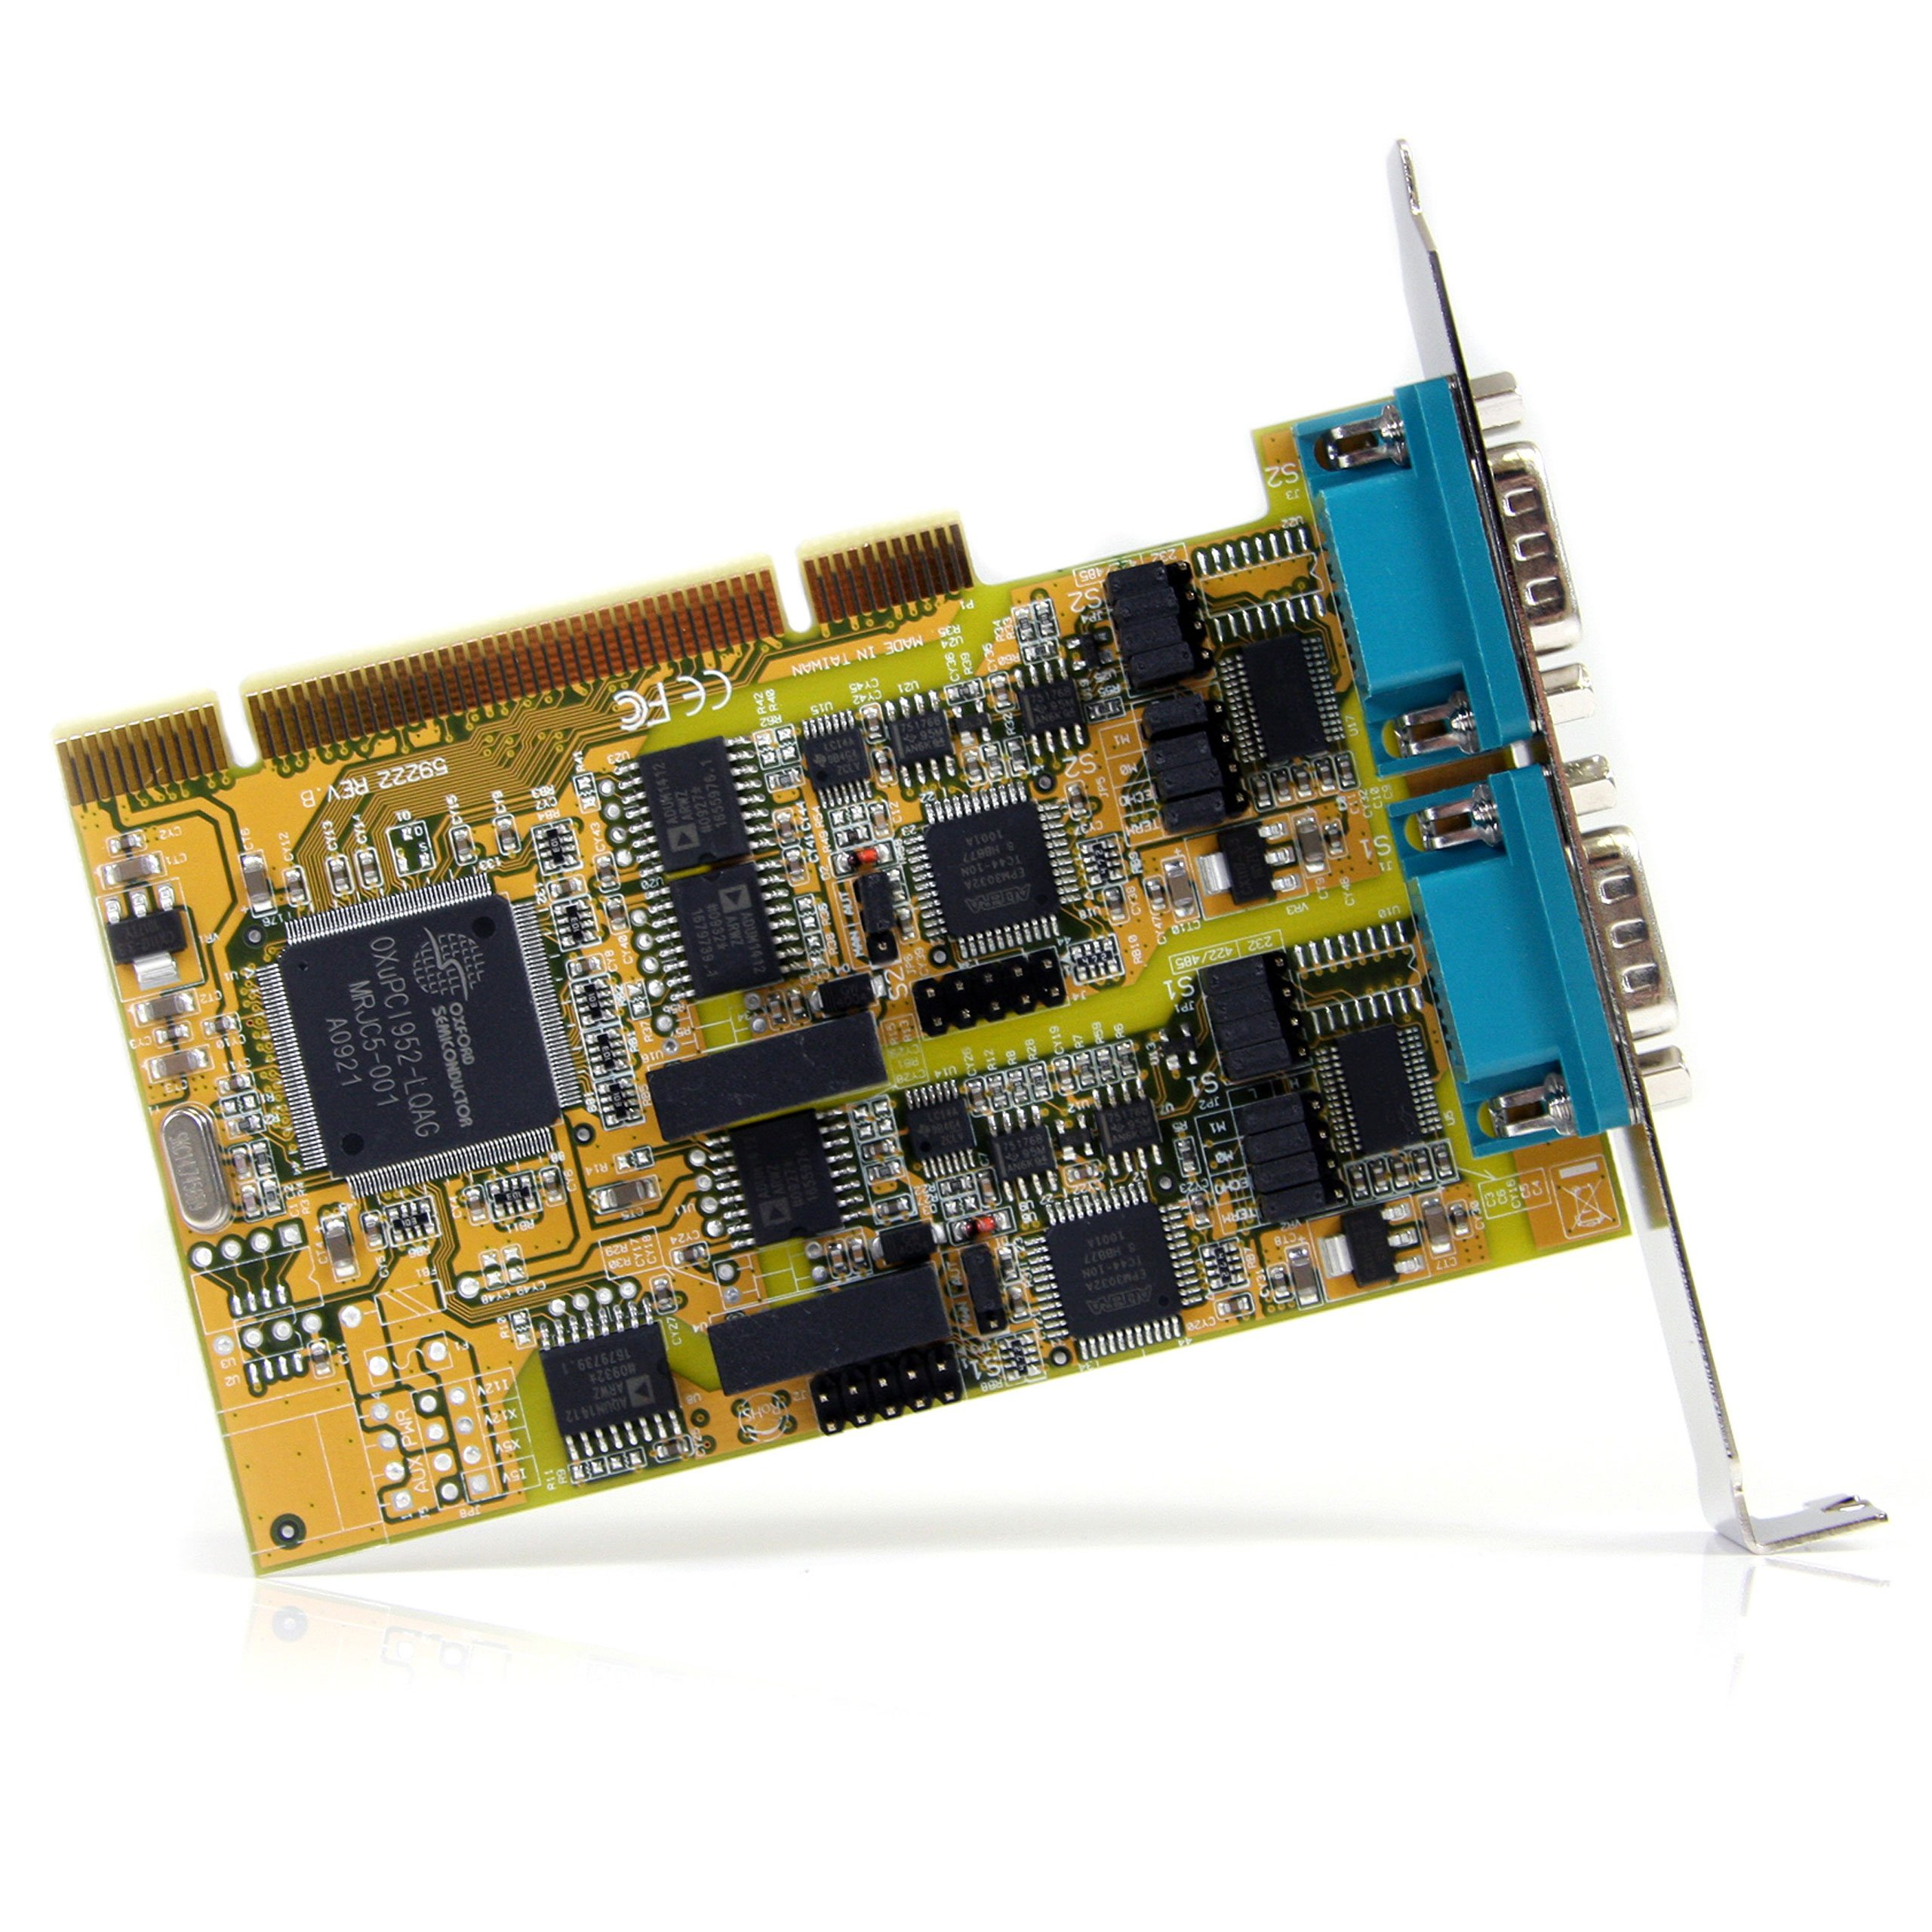 StarTech.com PCI2S232485I 2 Port RS232/422/485 PCI Serial Adapter Card with ESD Protection by StarTech (Image #2)